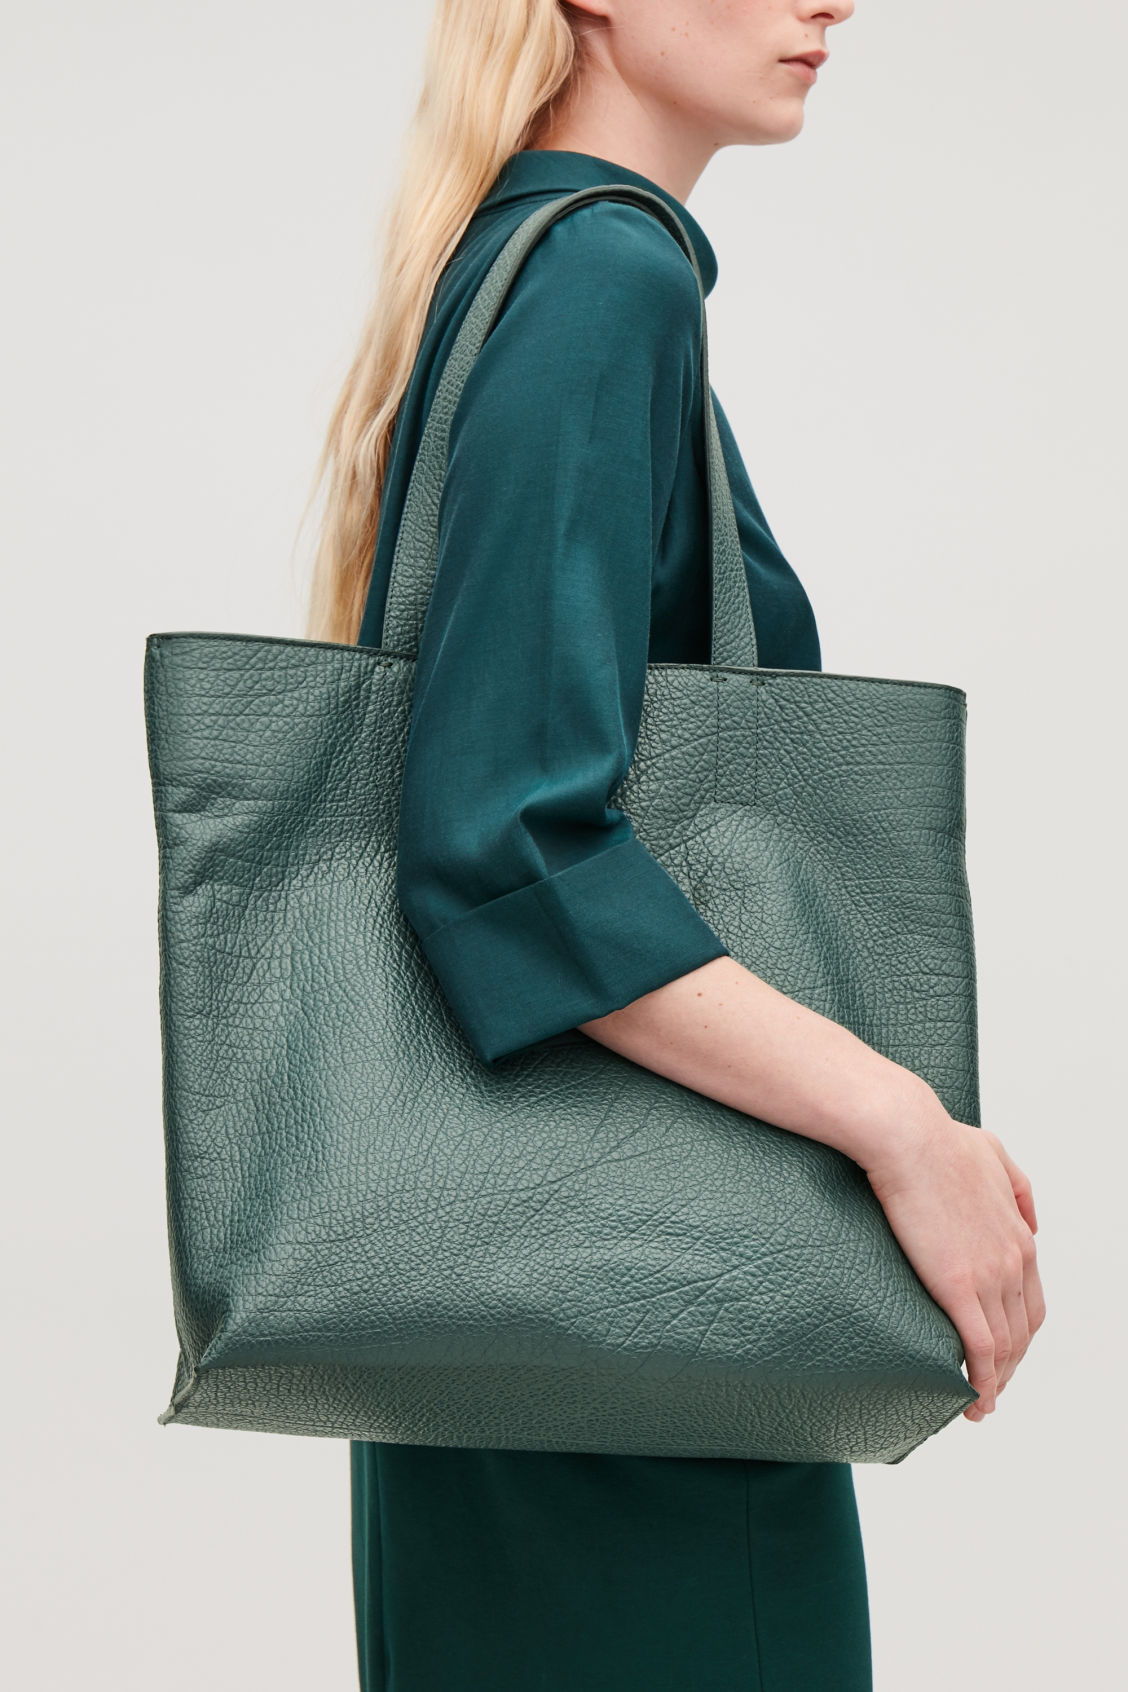 Detailed image of Cos detachable-pouch leather bag  in green